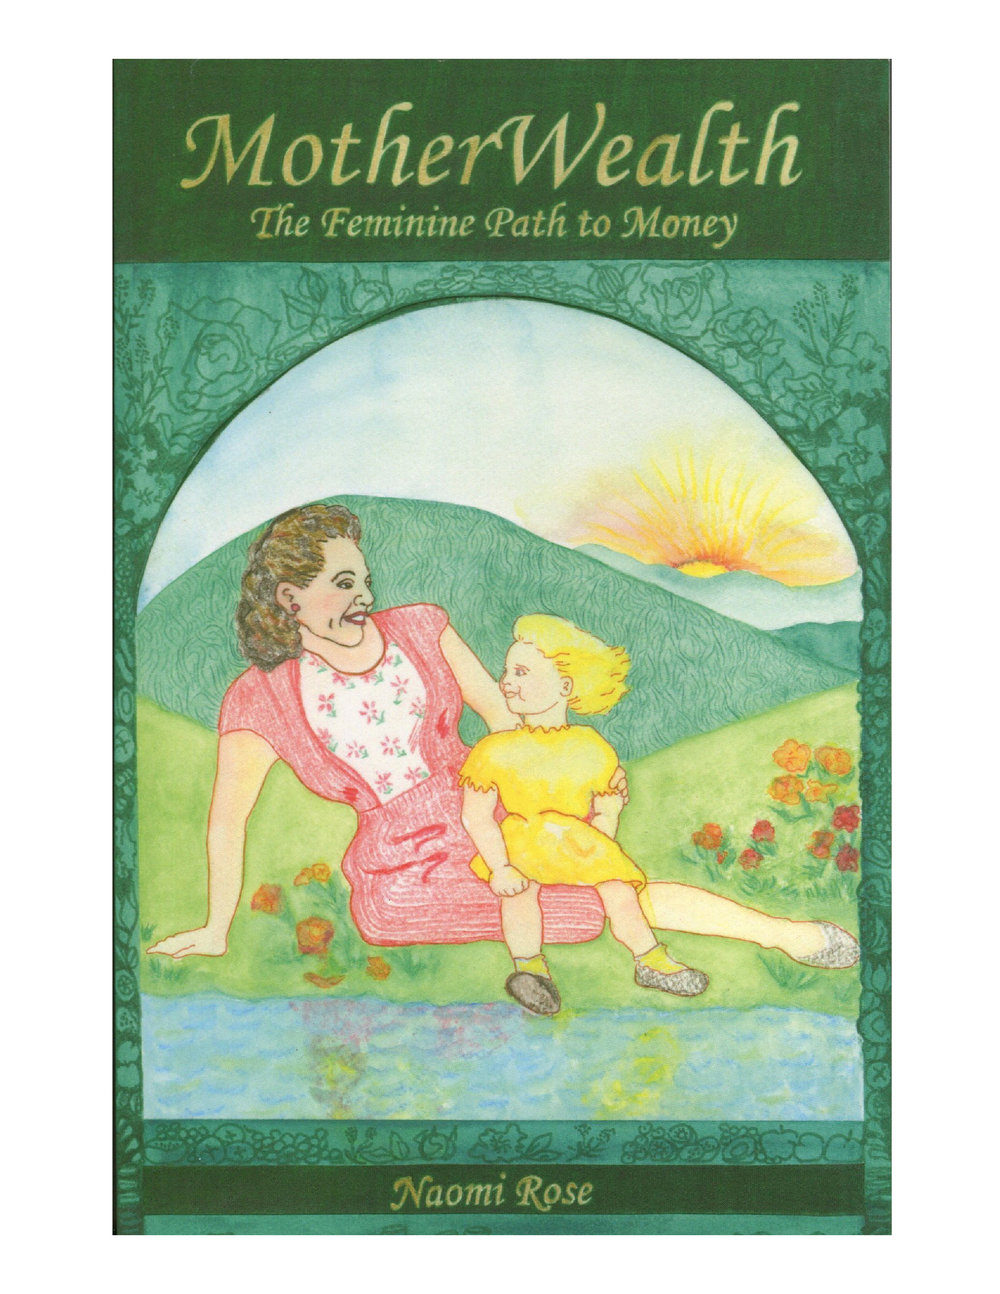 MotherWealth book front cover image.JPG